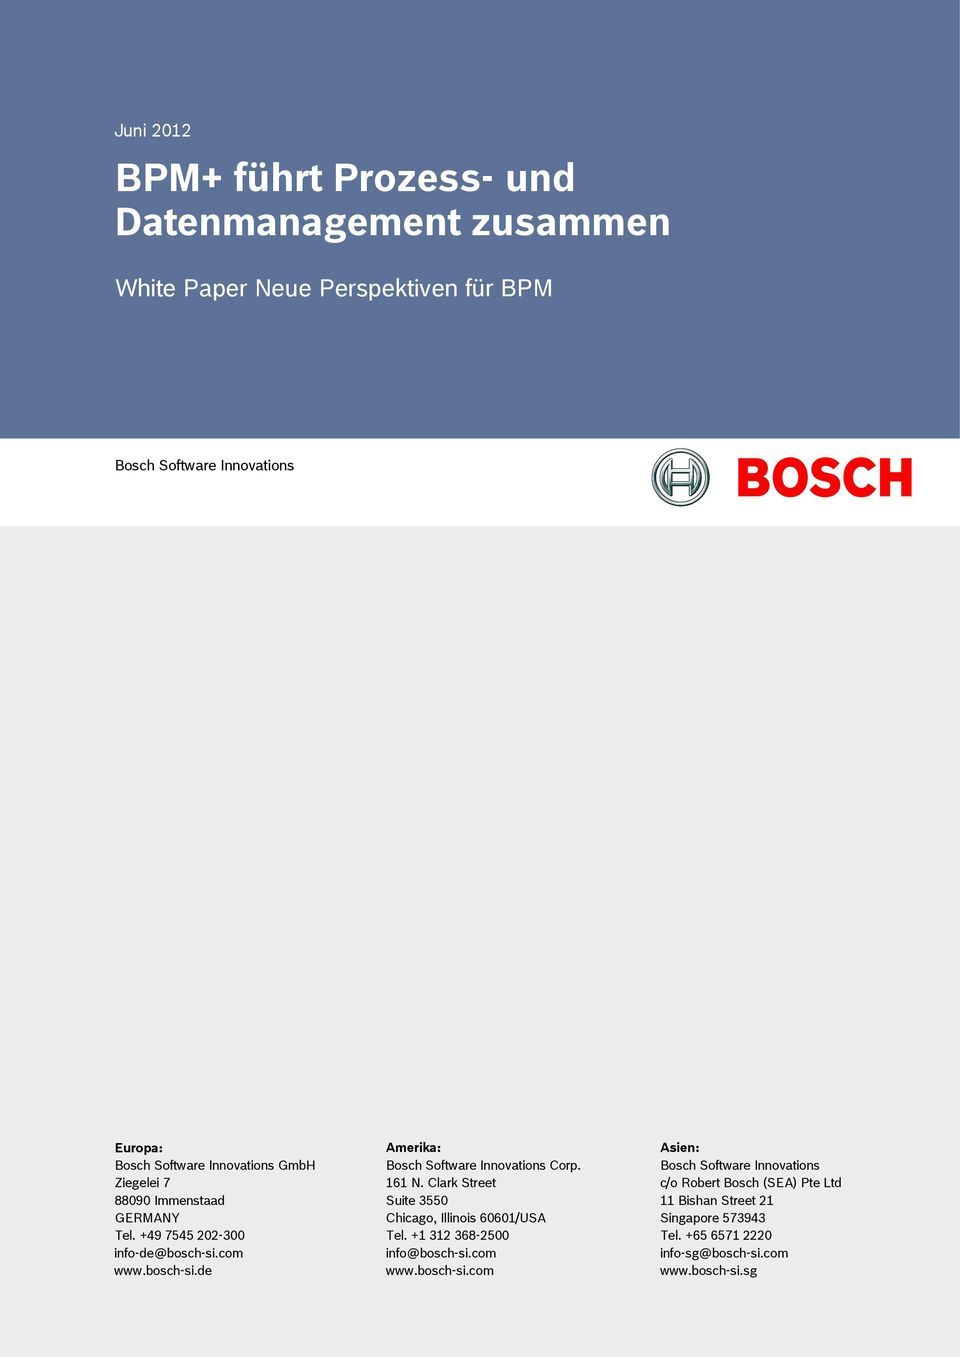 com www.bosch-si.de Amerika: Bosch Software Innovations Corp. 161 N. Clark Street Suite 3550 Chicago, Illinois 60601/USA Tel.